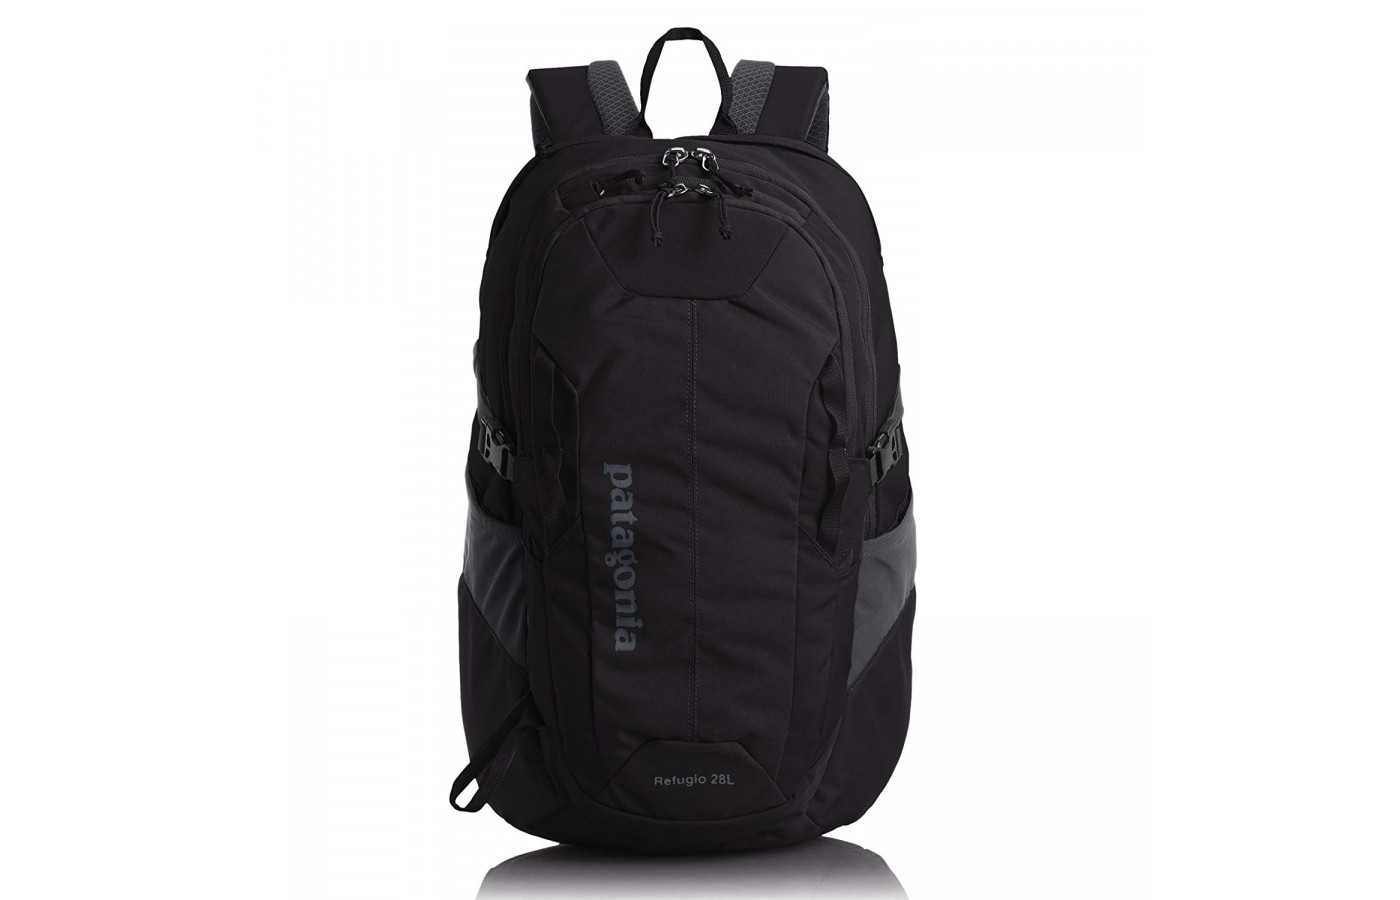 The Patagonia Refugio offers a durable water repellent fabric for water protection.